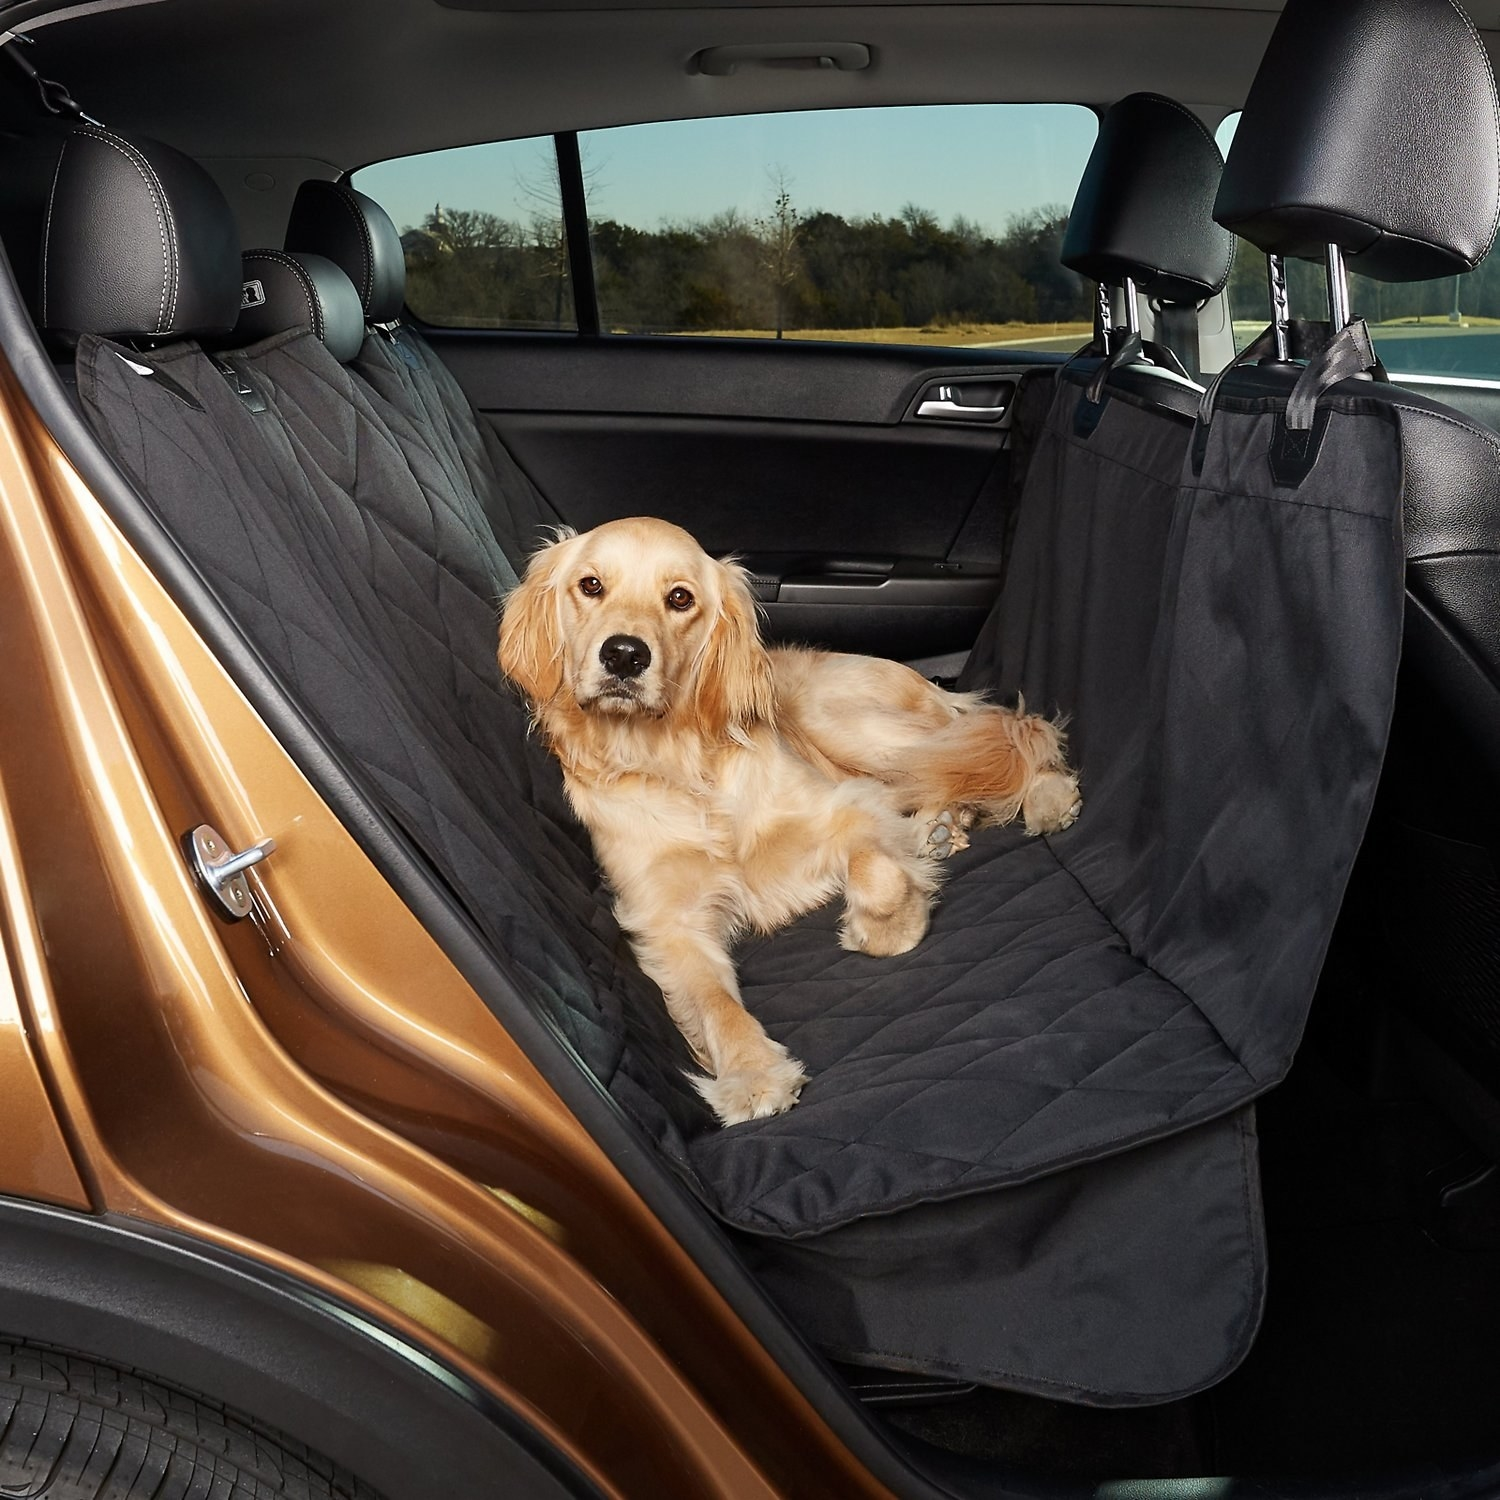 Dog sitting on the seat cover